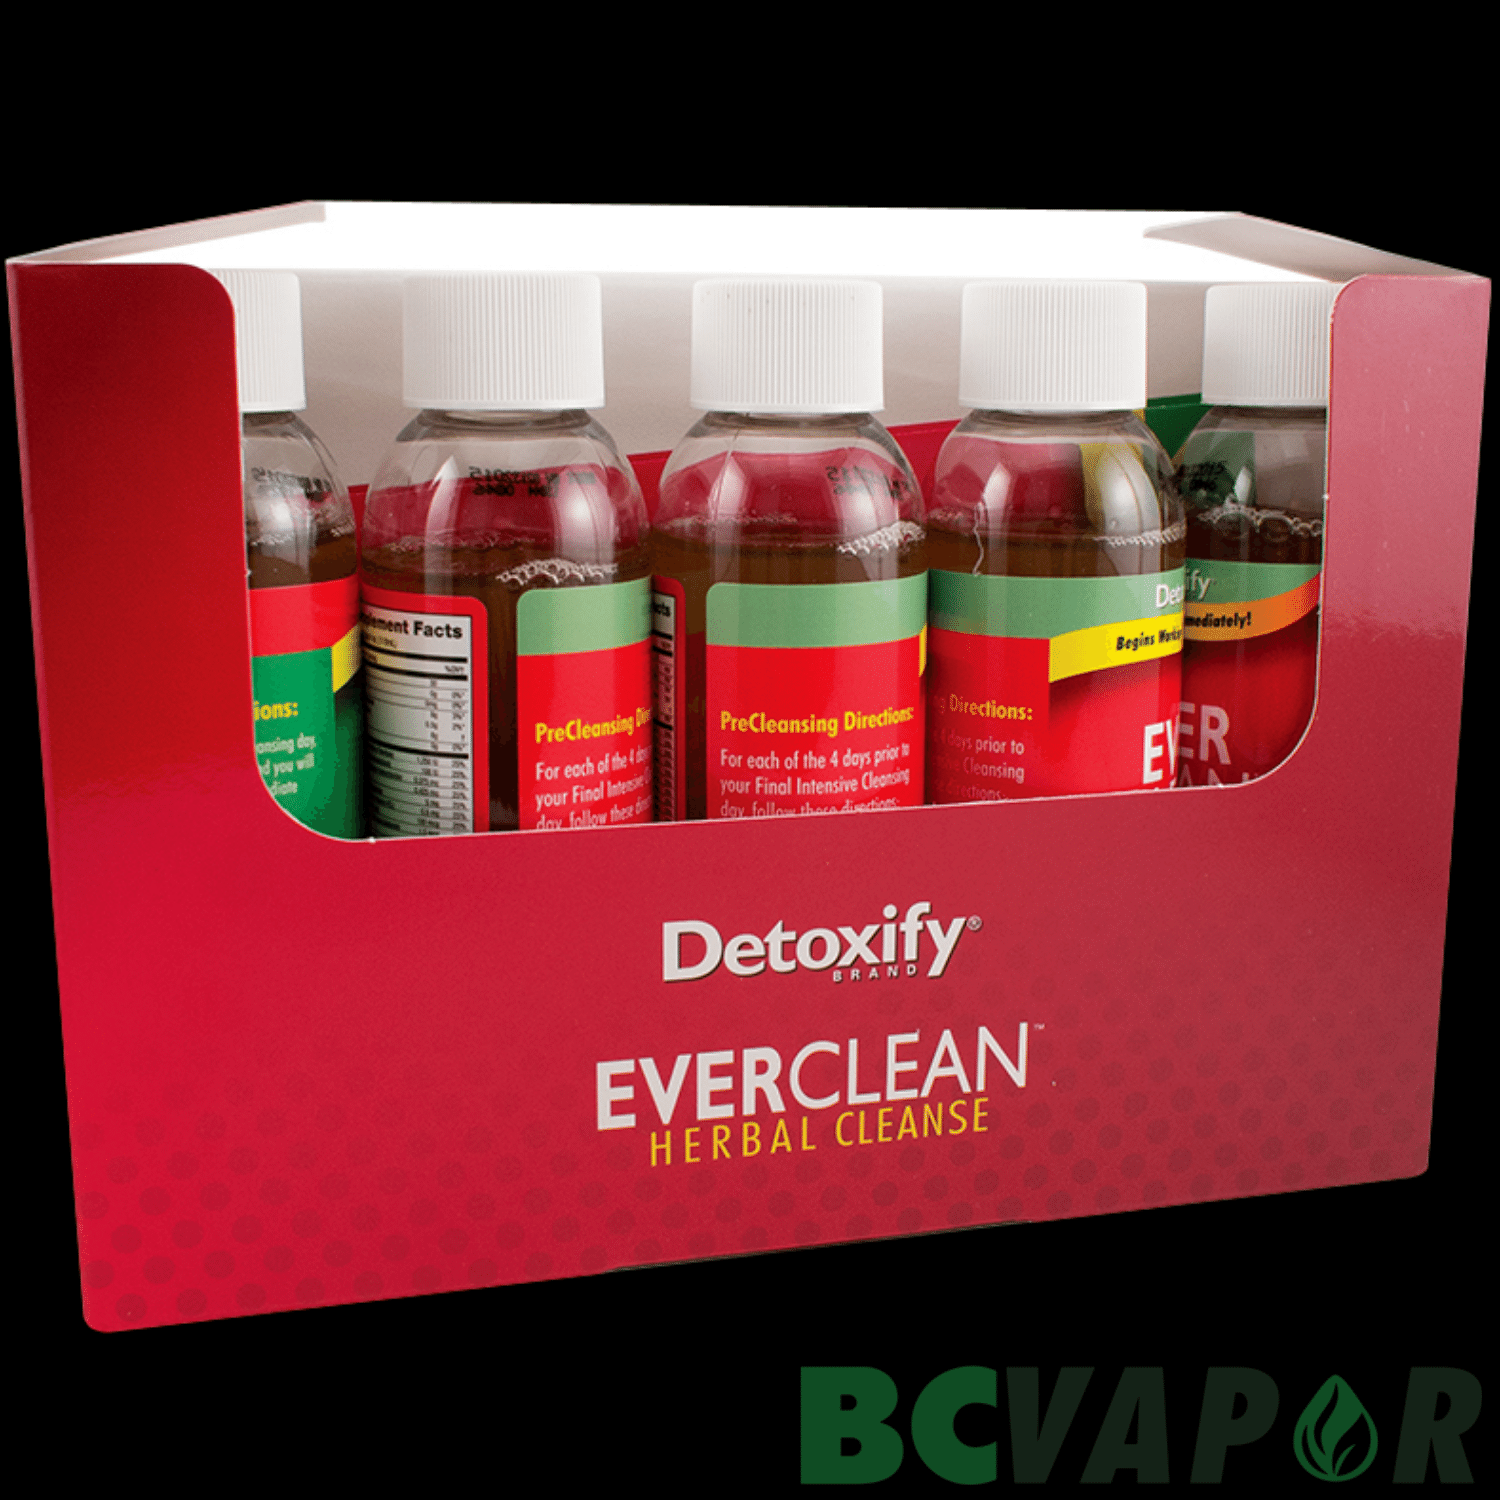 Detoxify - Detox Ever Clean Herbal Cleanse 5 Day Cleansing Program